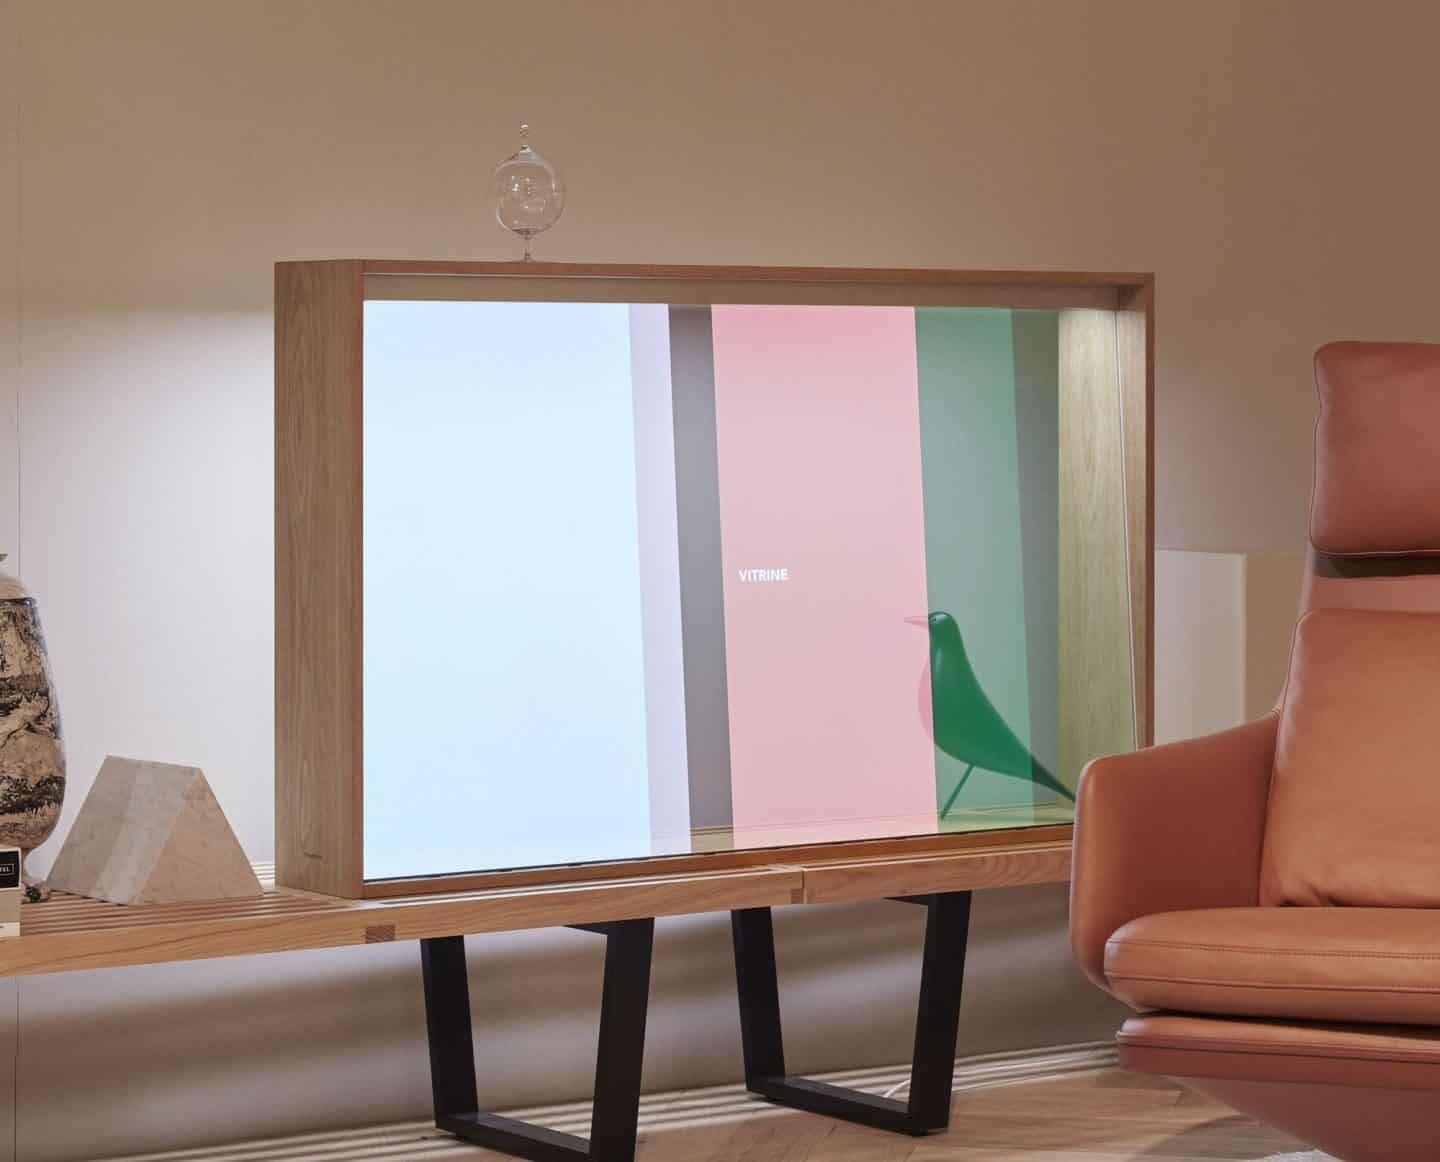 Panasonic Vitrine Transparent TV